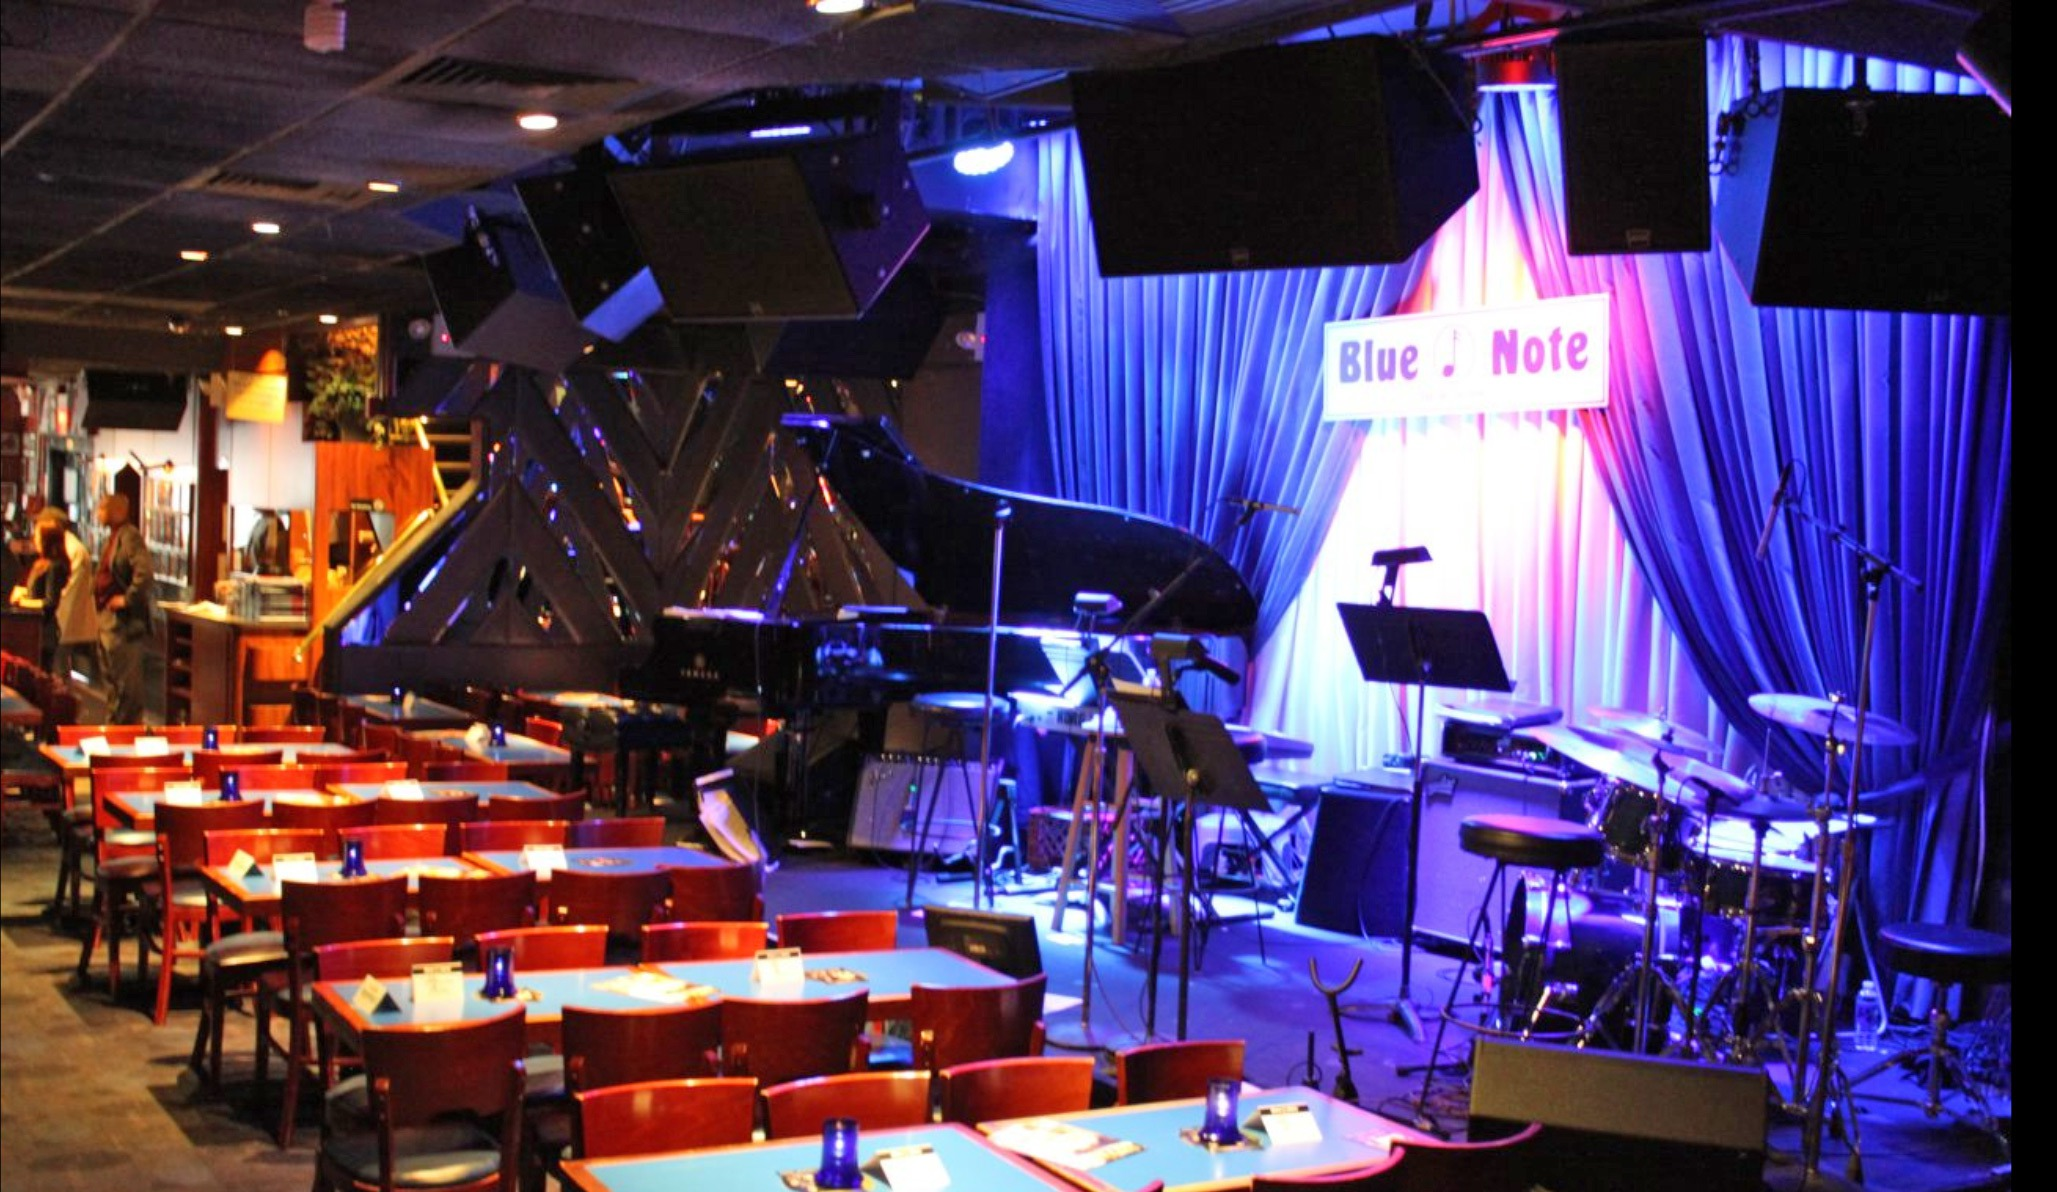 Sergio Baietta pianista al Blue Note di New York